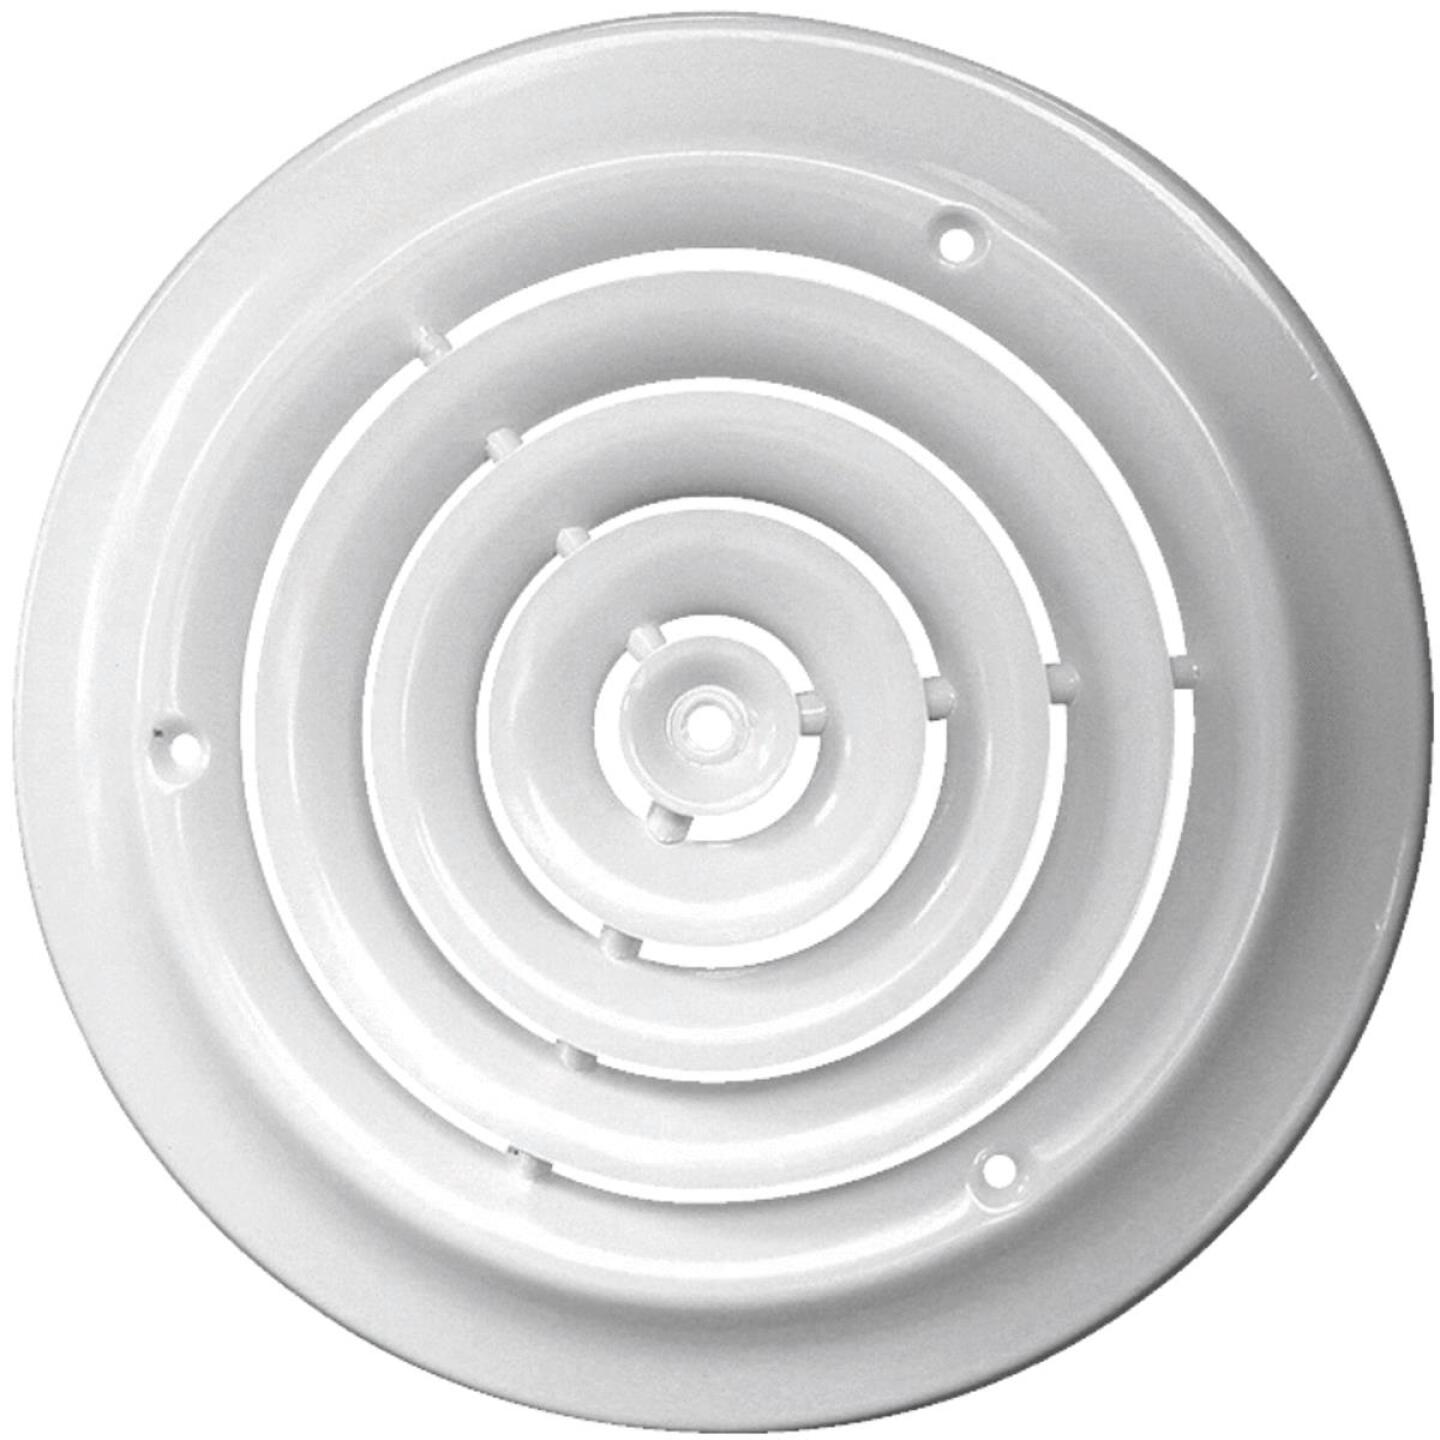 Accord 8 In. Round Ceiling Diffuser Image 1